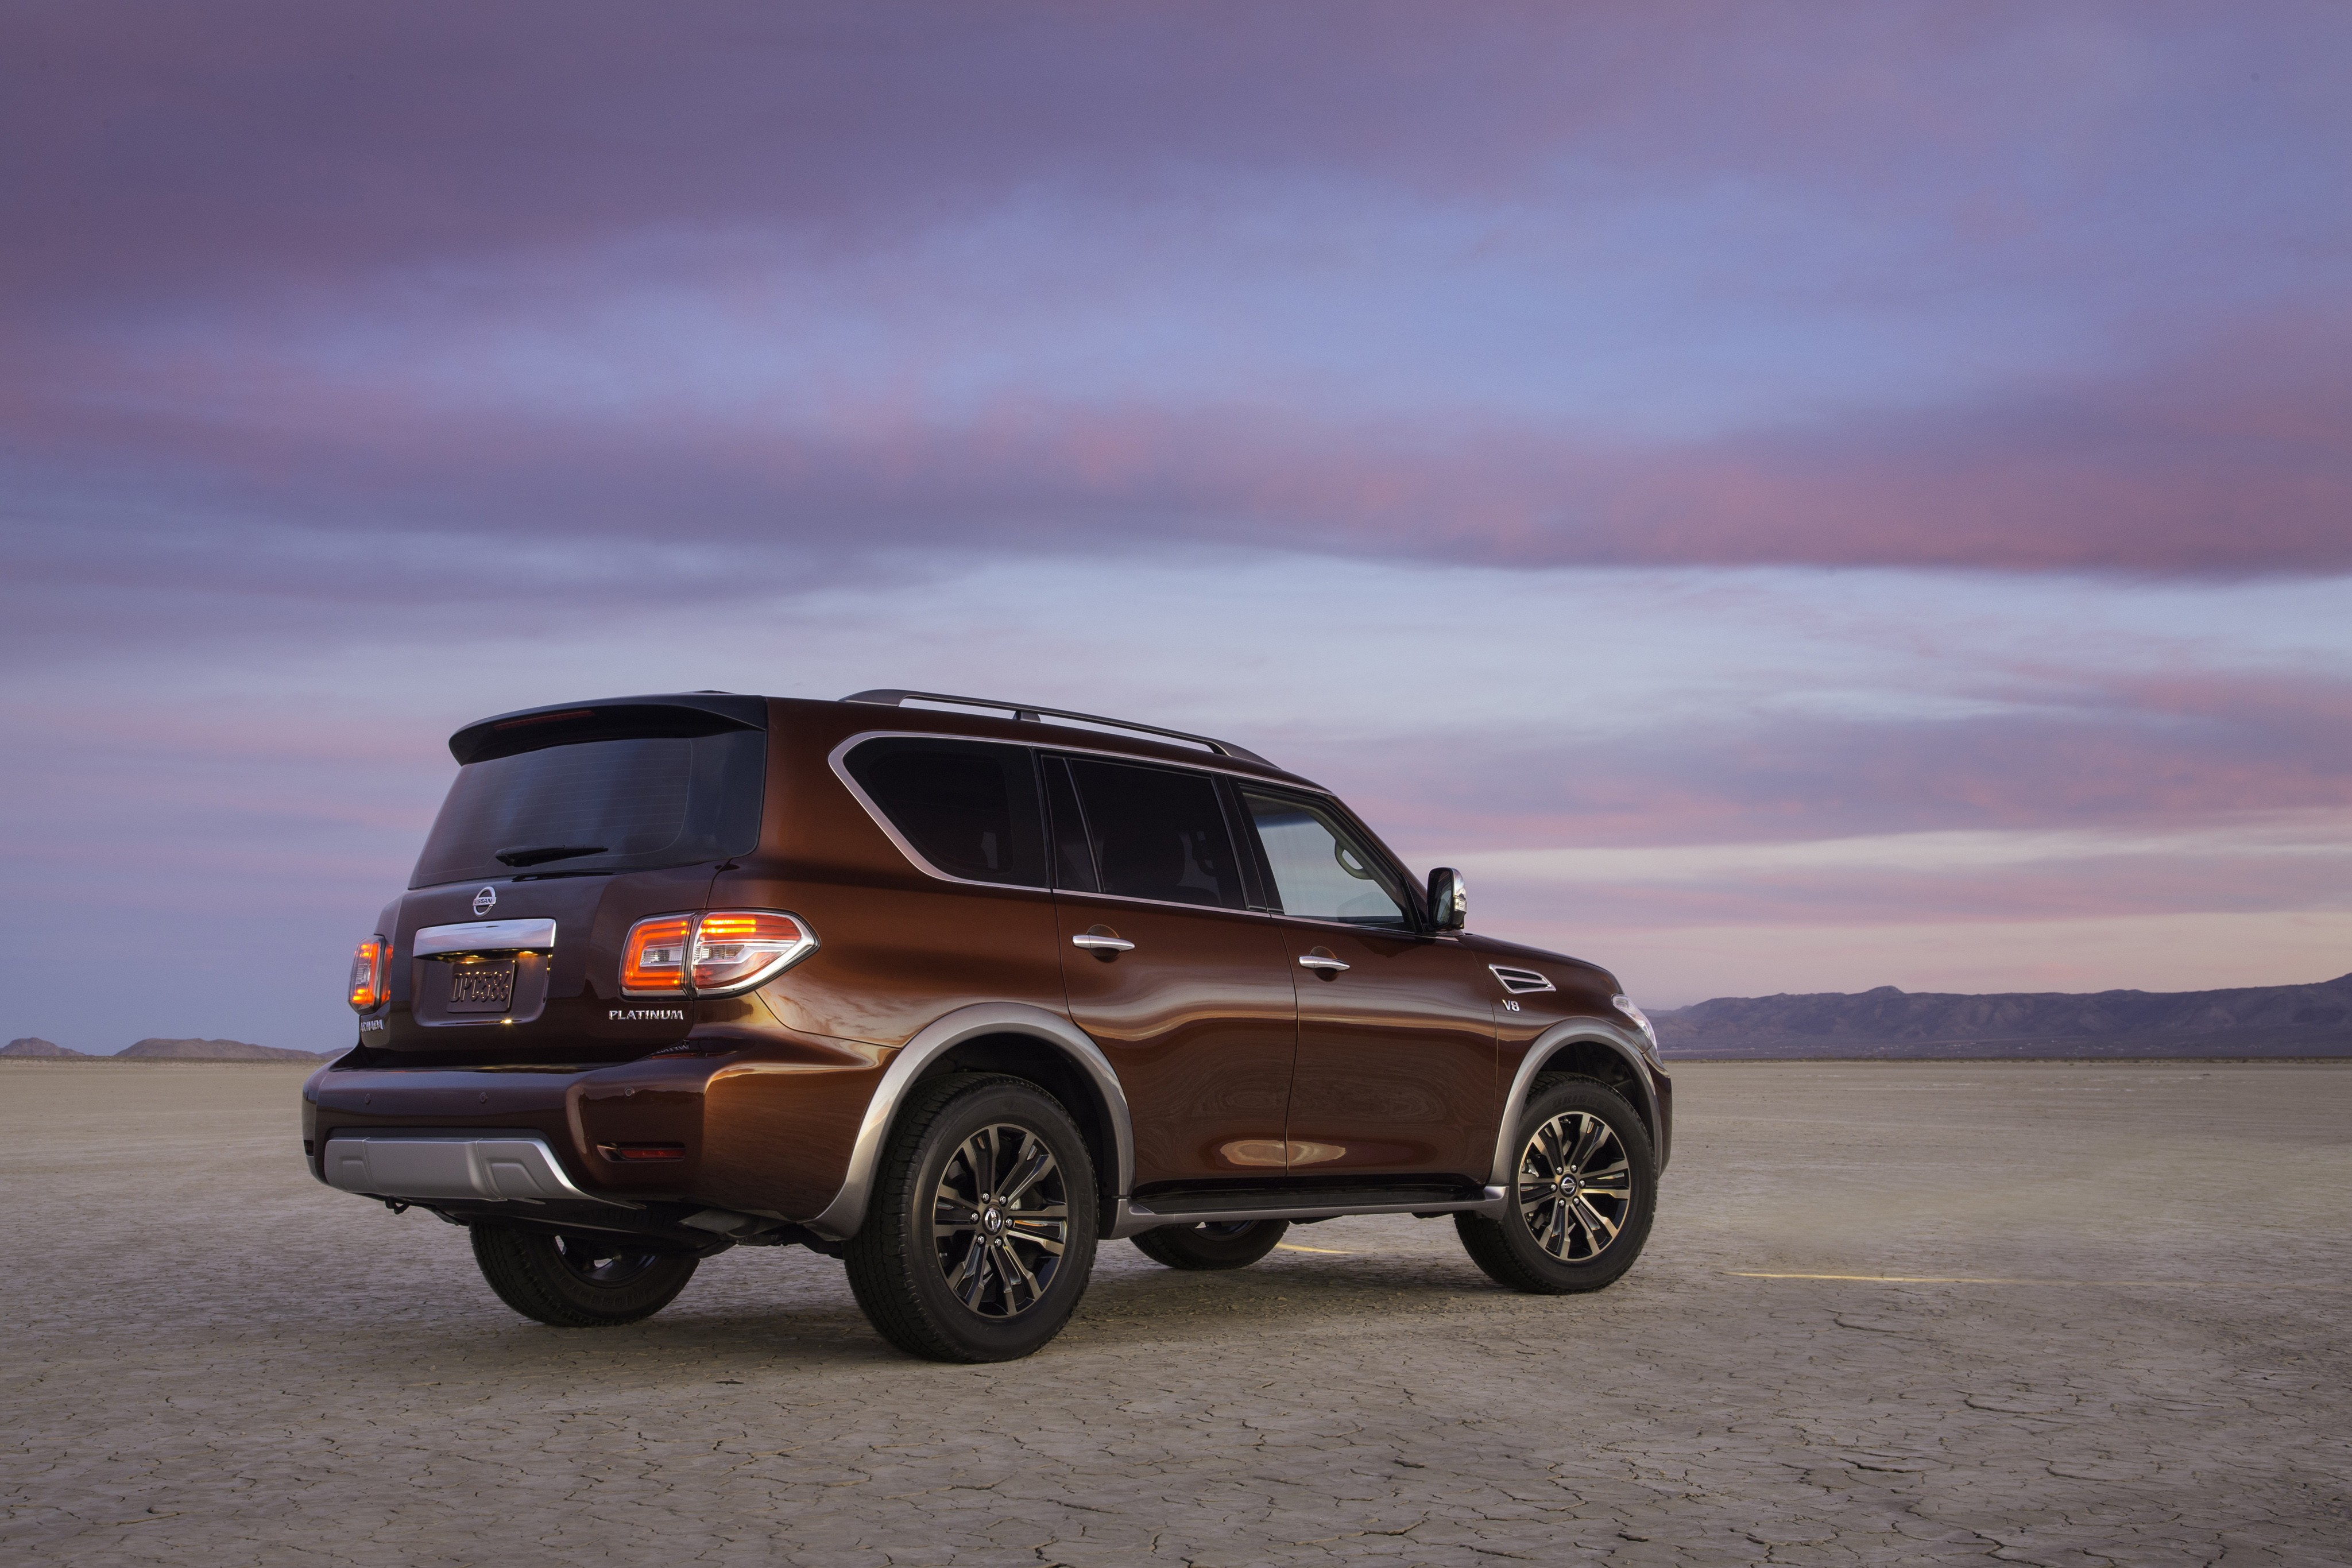 brings armada in nissan video finally roadshow years making new still the a videos